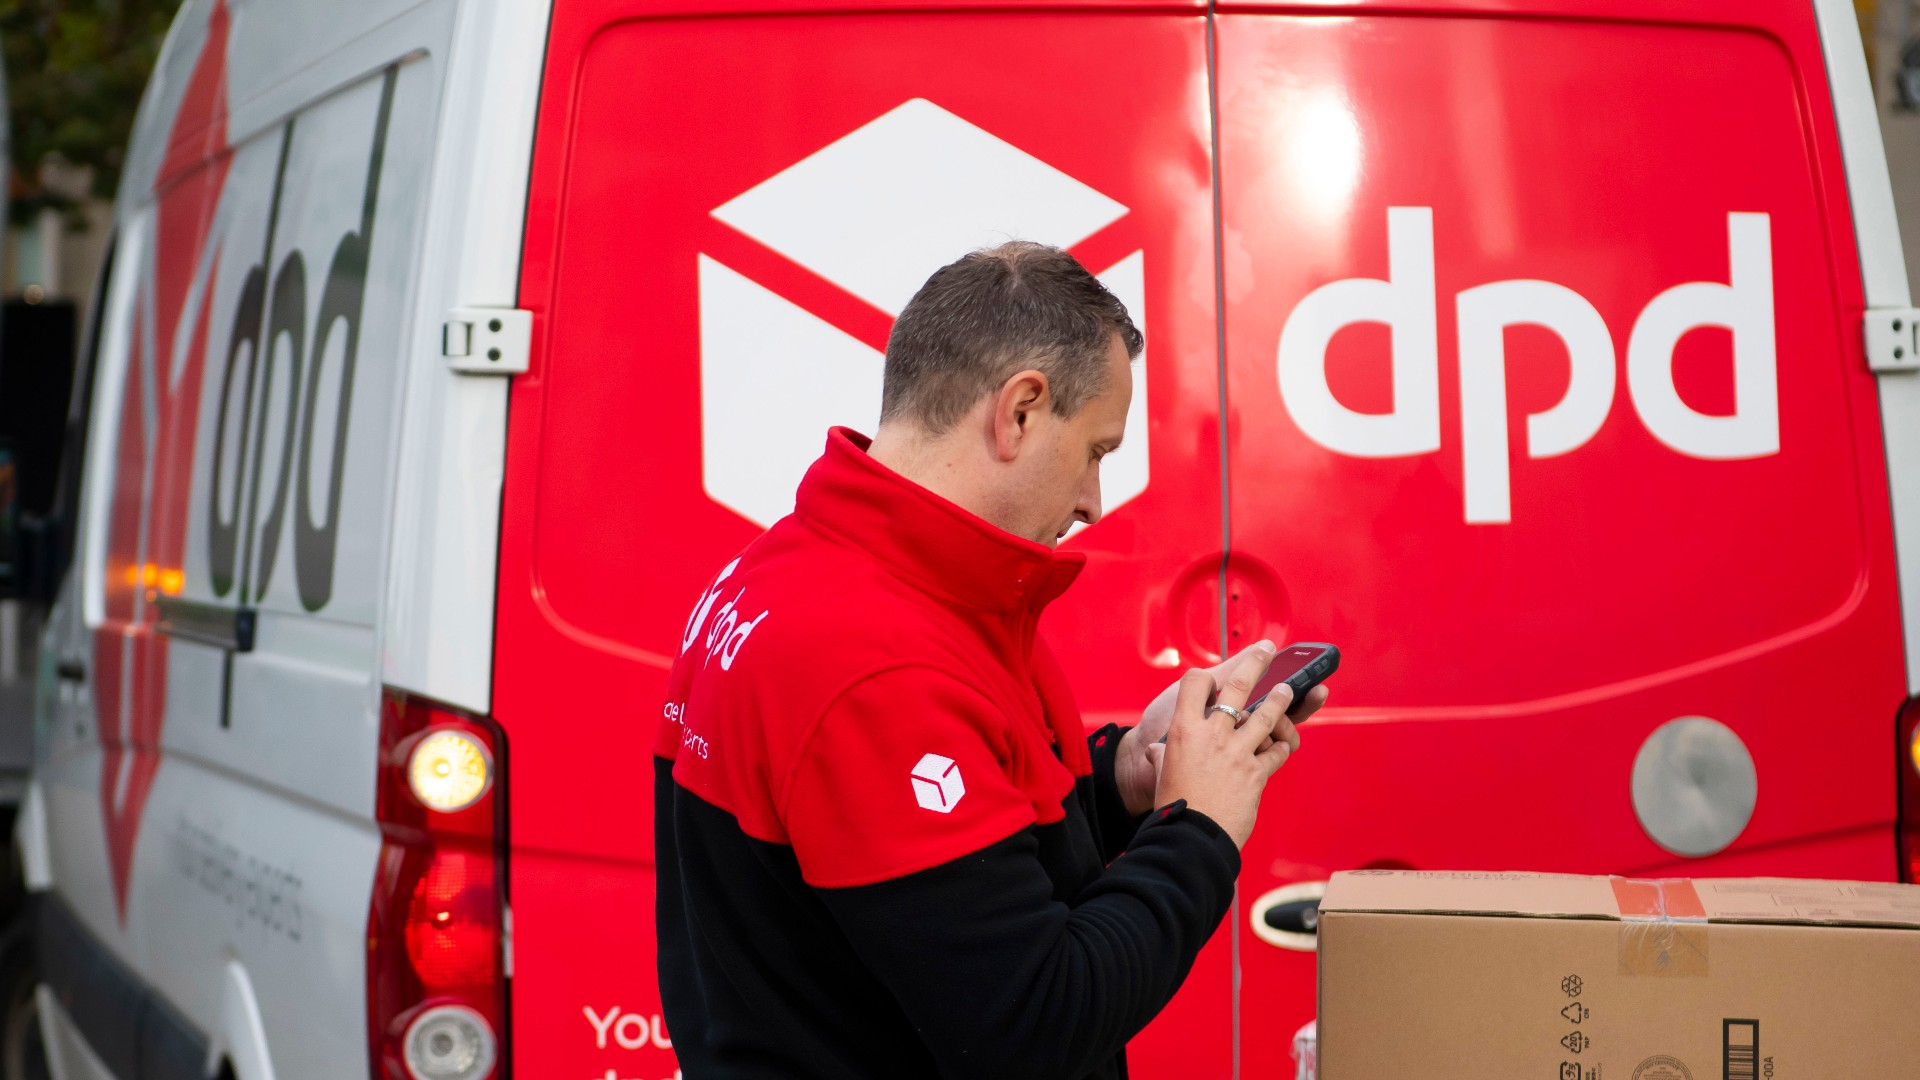 DPD Scam: Christmas shoppers warned to look out for DPD delivery scam